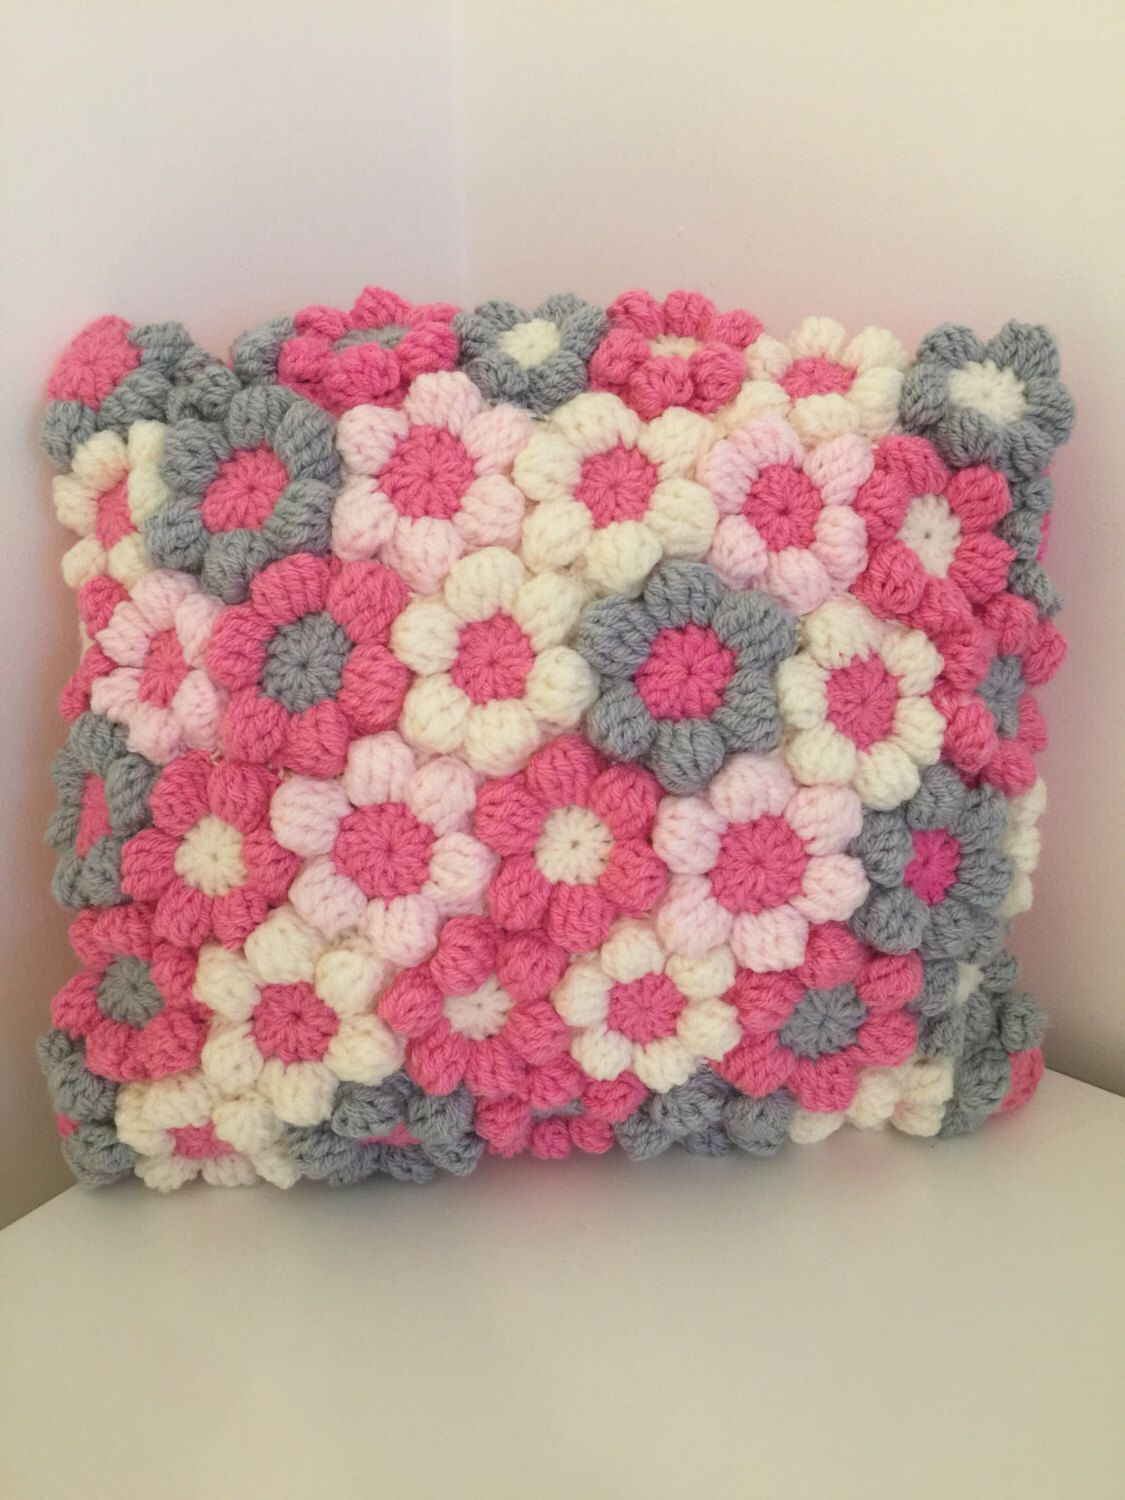 Crochet Cushion,Kissen, Amorttiguar, Kussen,Cuscino,Coussin, Almofada, Pink Cream & Grey Flower Couch Pillow Gift 16 x 16 inch